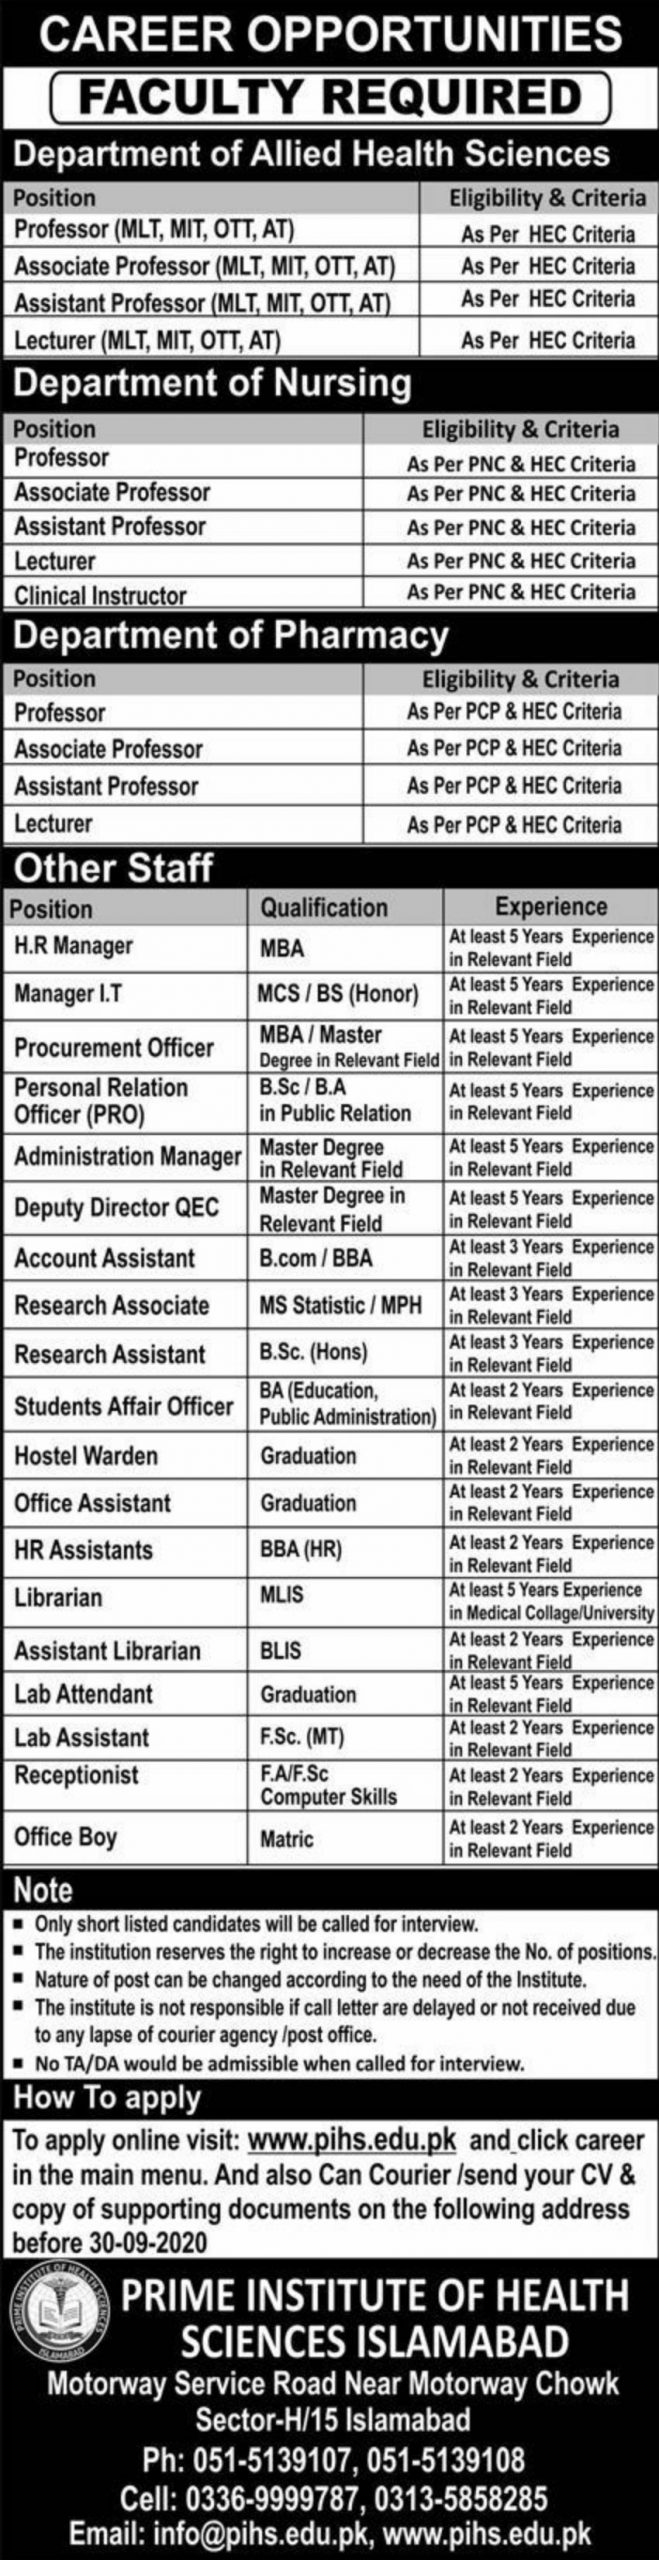 Prime Institute of Health Sciences Islamabad Jobs September 2020